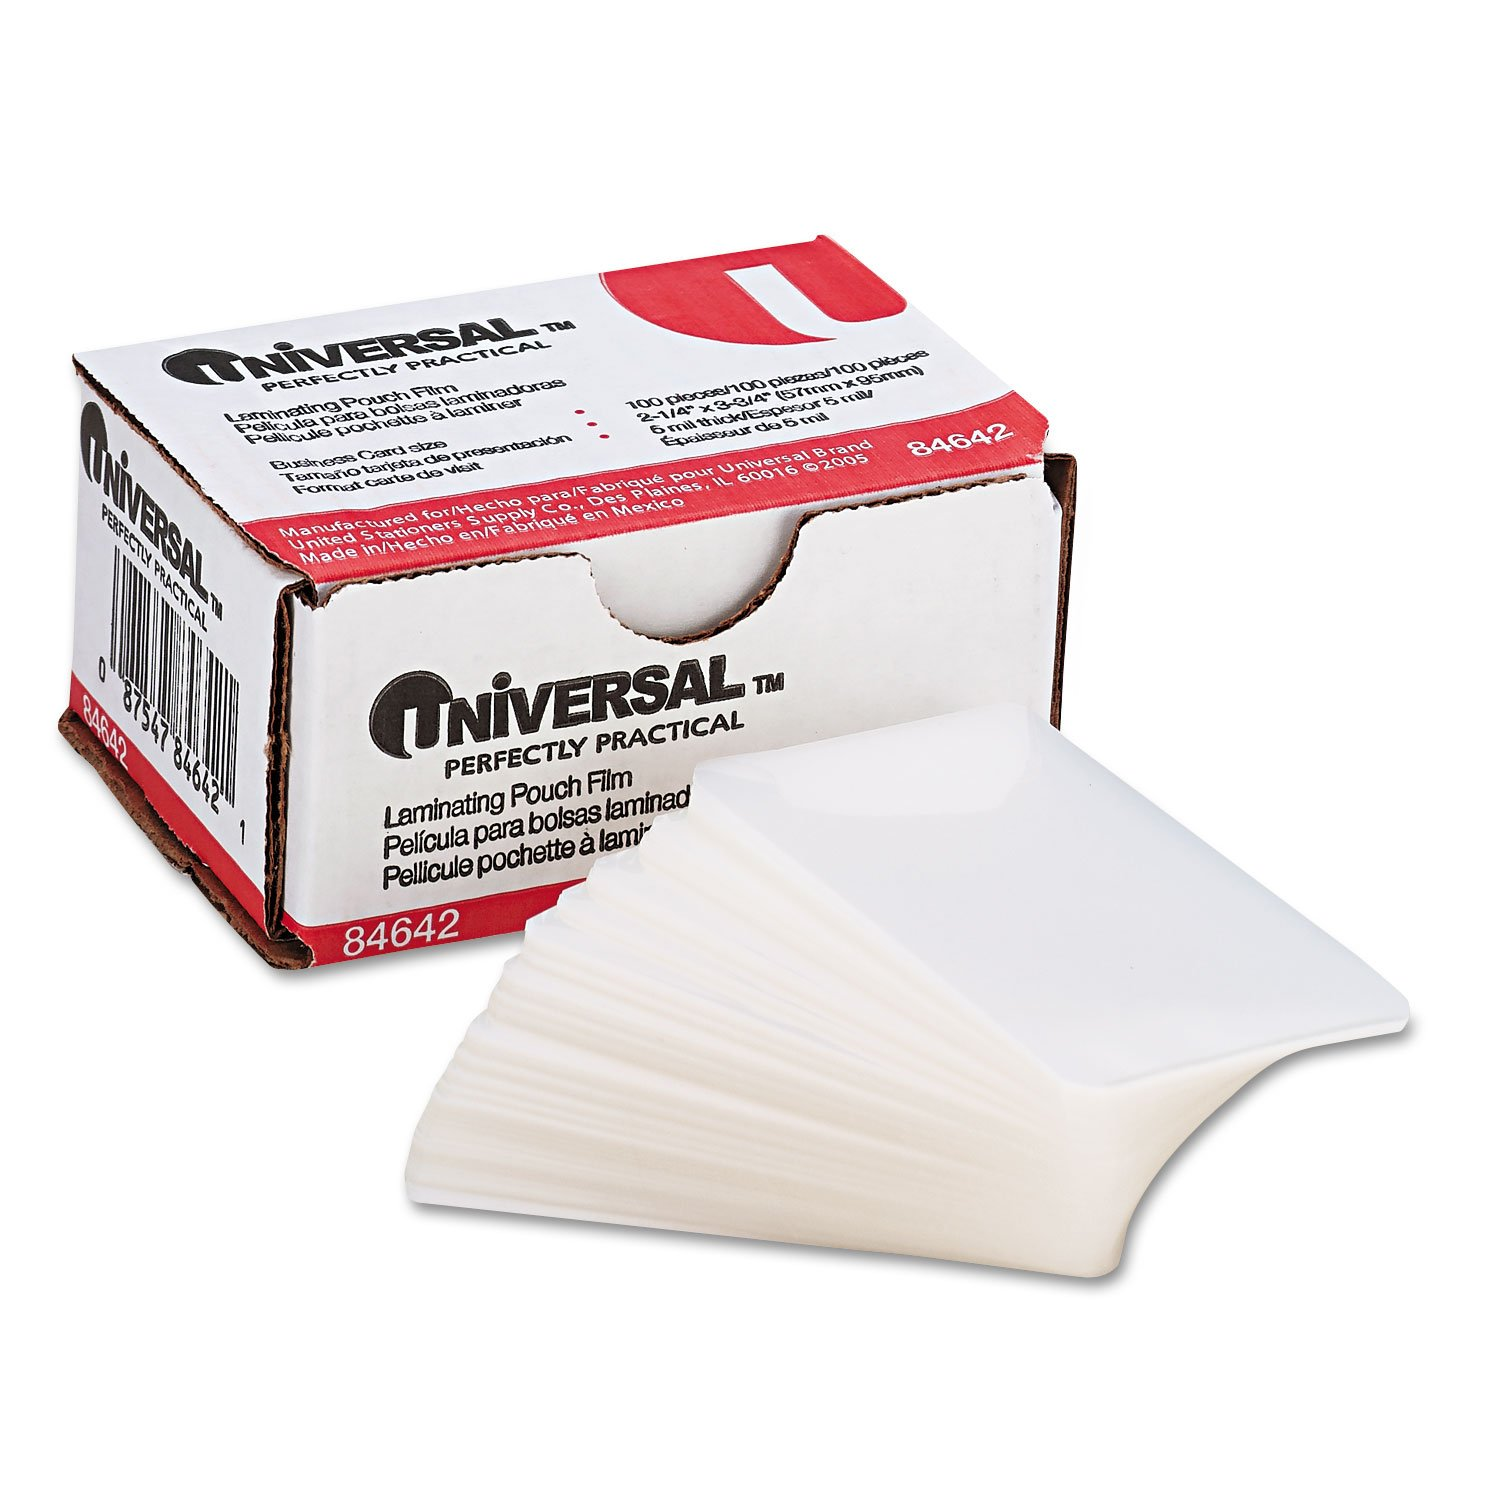 Amazon universal unv84642 100 per box clear laminating pouches amazon universal unv84642 100 per box clear laminating pouches 2 14 inch x 3 34 inch 1 pack binder pouches office products reheart Images